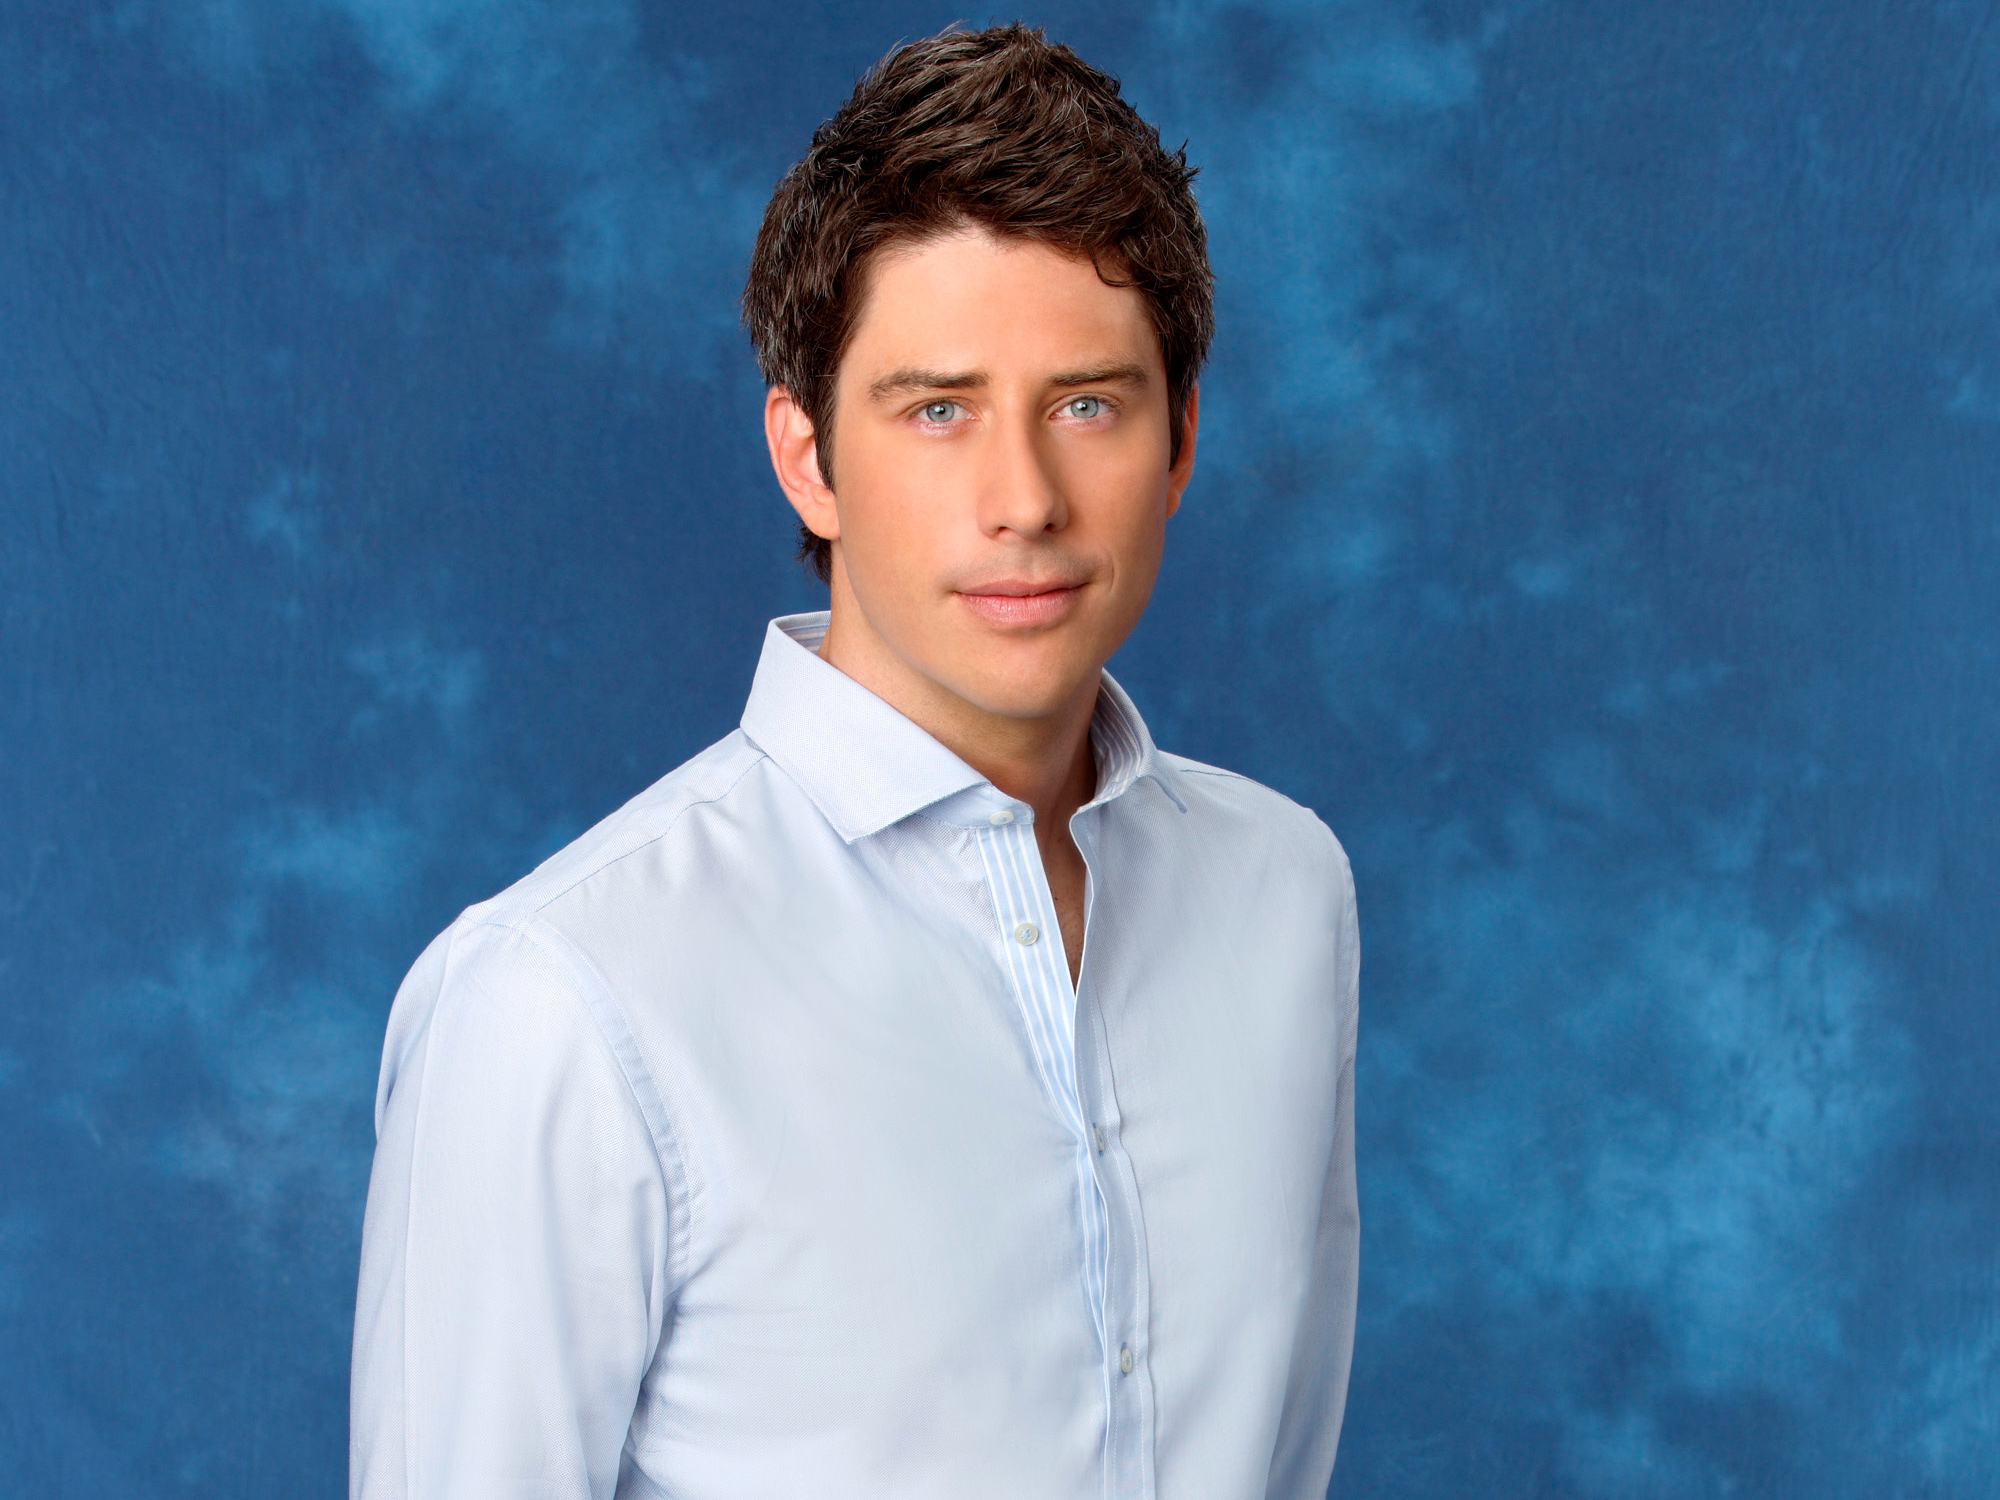 The <em>Bachelor</em> Stars Have Mixed Reactions to Arie Luyendyk Jr.'s Casting